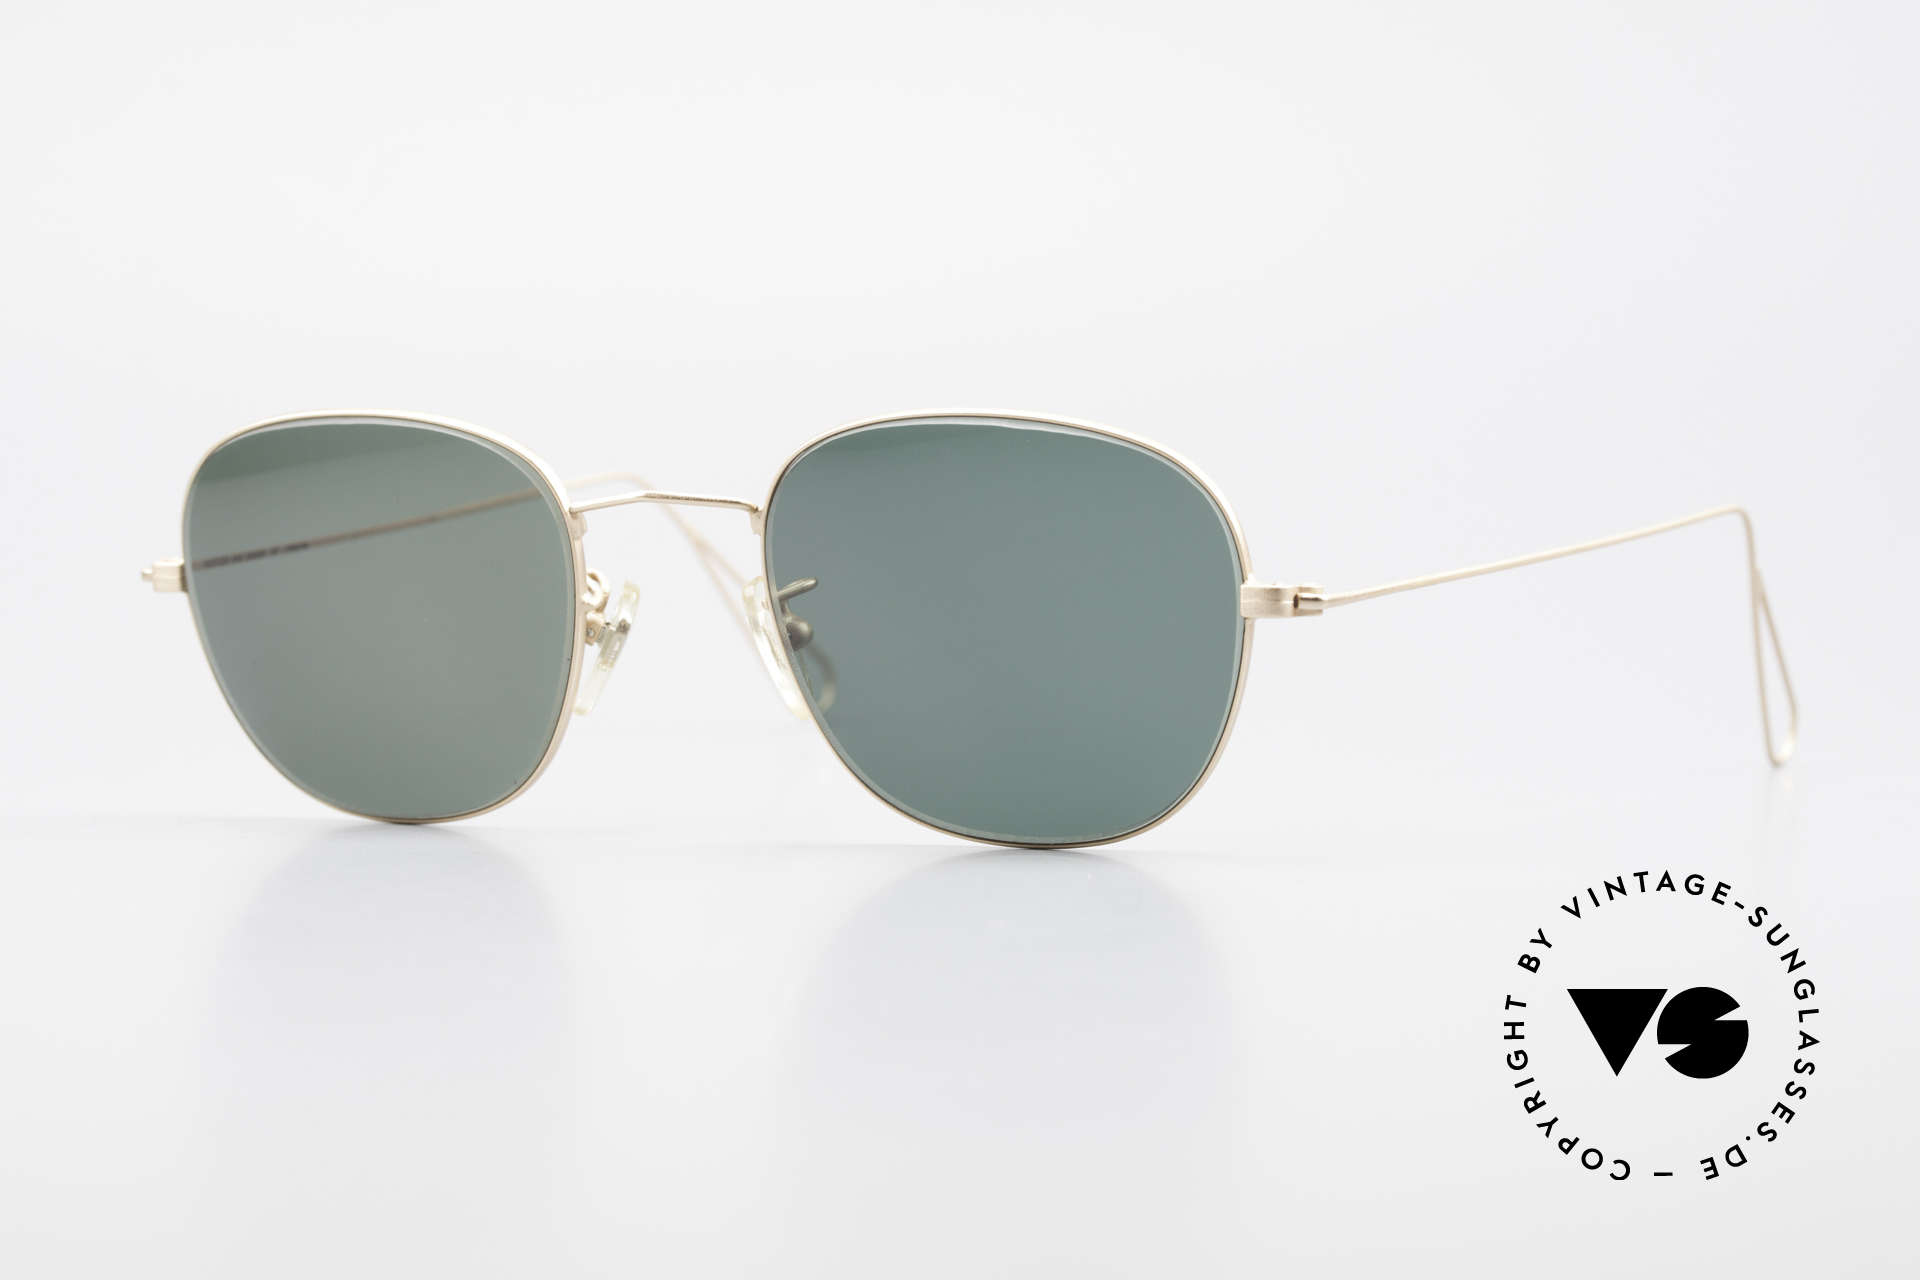 Cutler And Gross 0307 Classic 90s Designer Sunglasses, CUTLER and GROSS designer shades from the late 90's, Made for Men and Women